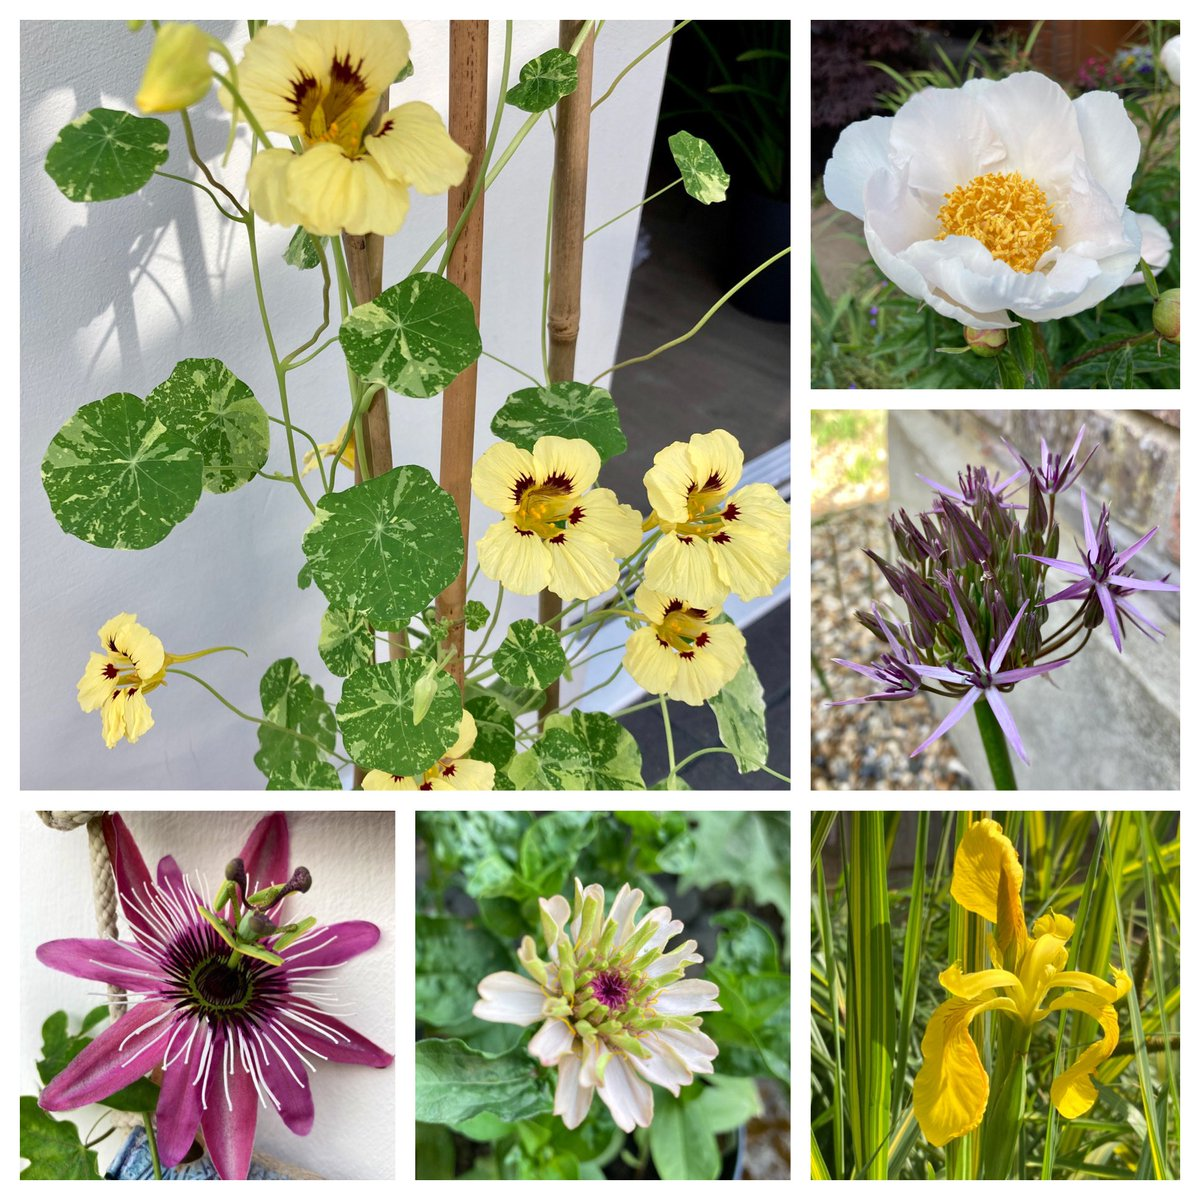 Happy to join in with my first #SixonSaturday and share my love for flowers around my garden 🌼🌿🌸 @cavershamjj https://t.co/H818RyE5oF